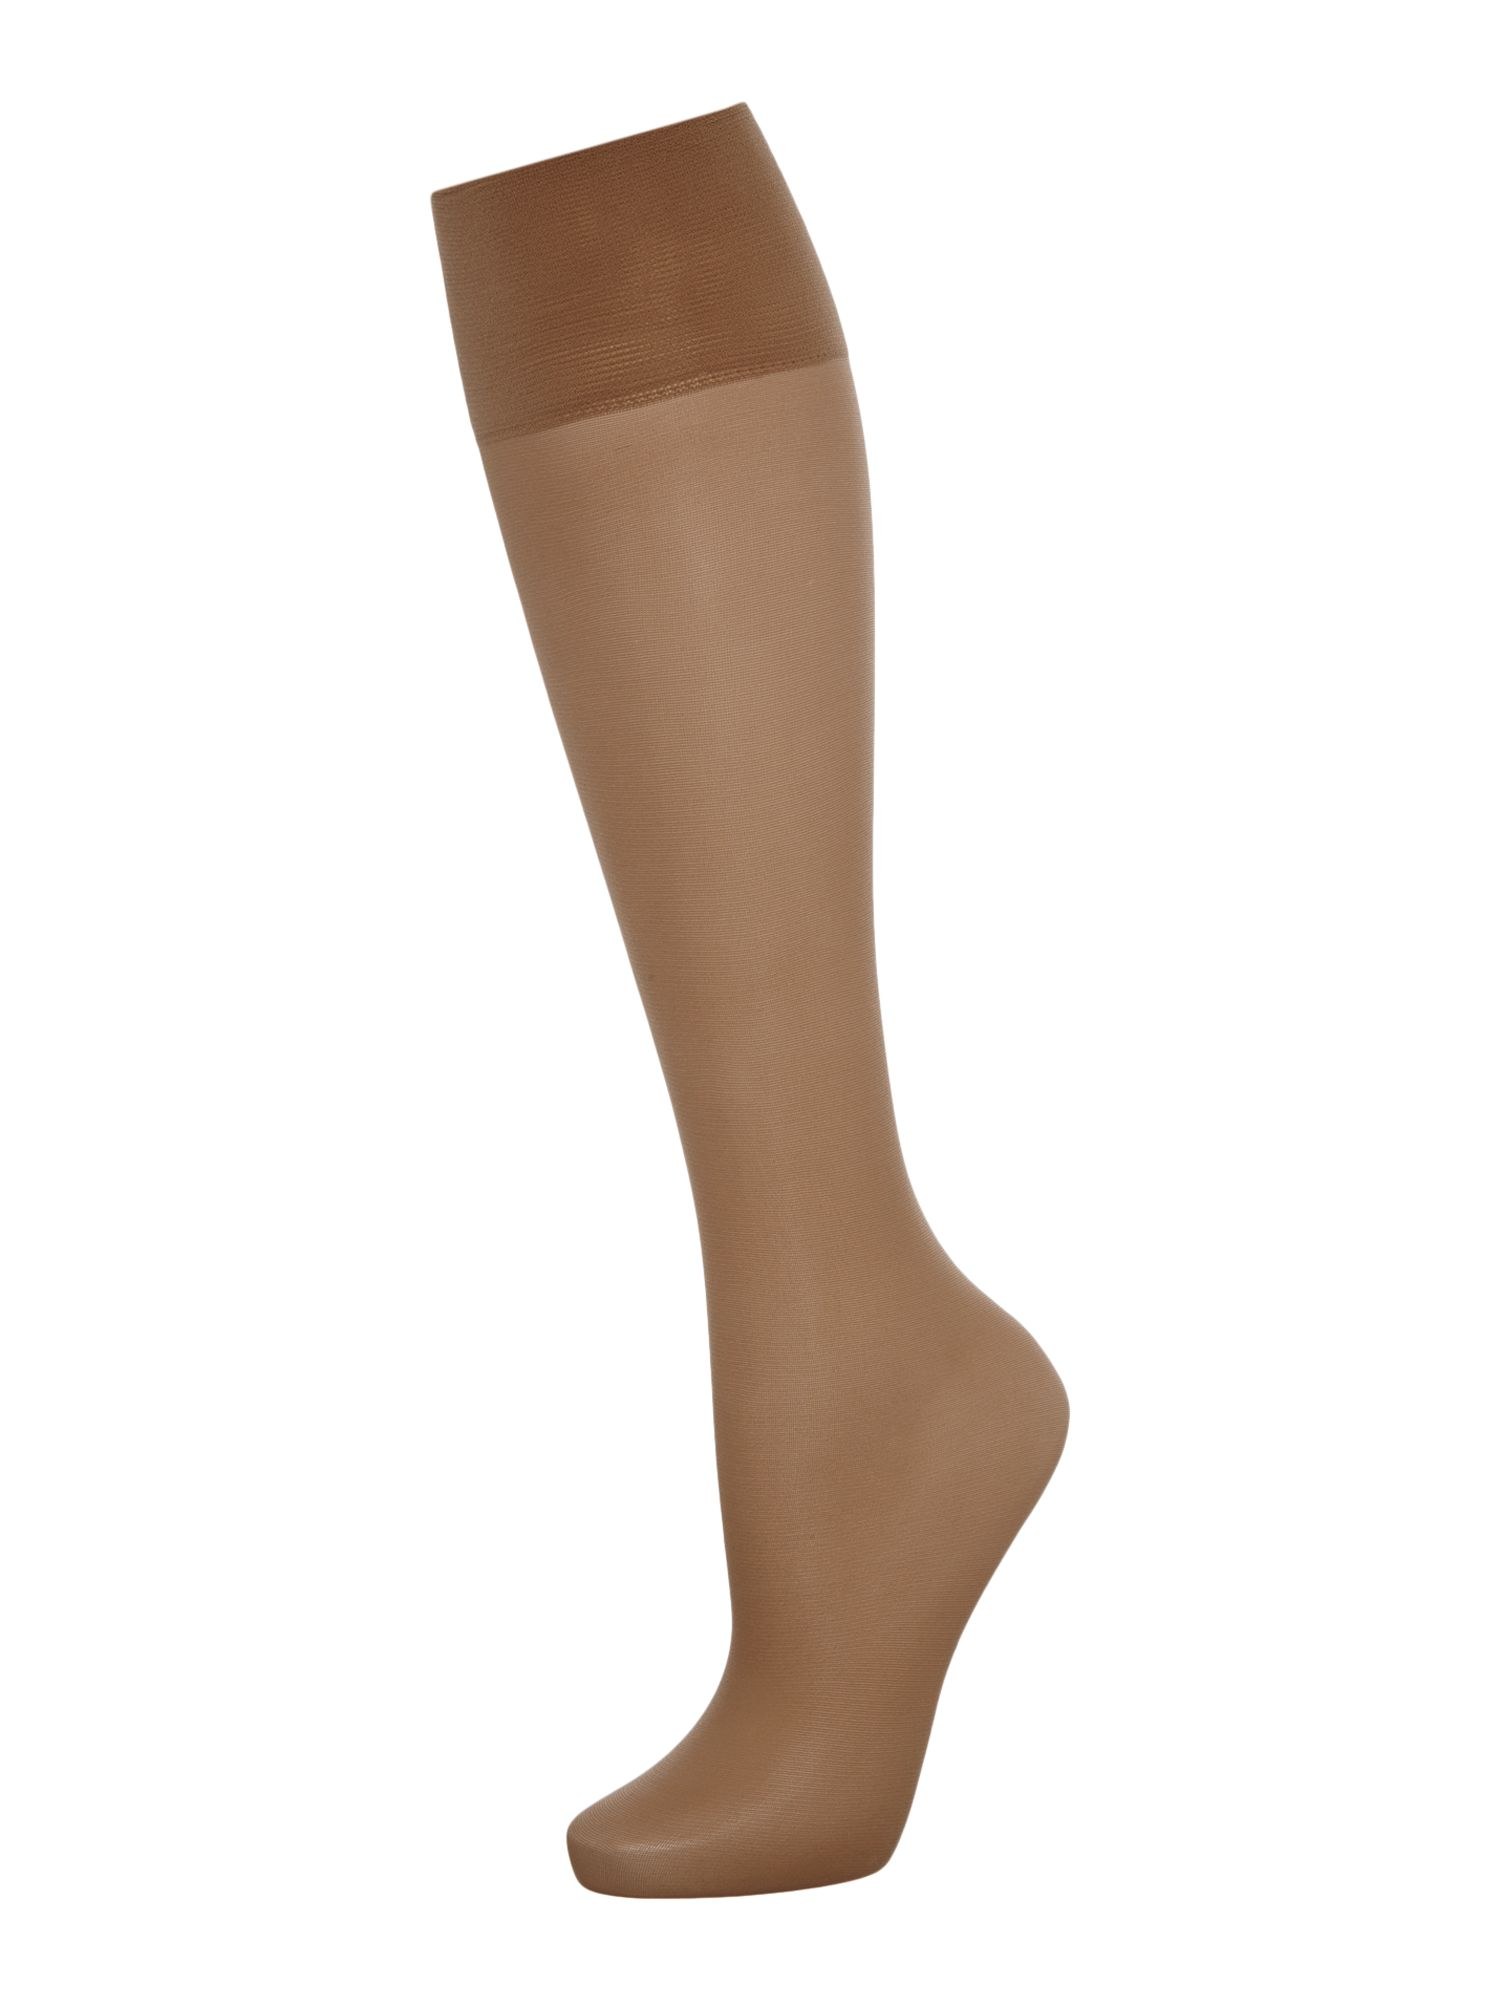 Charnos 5 Per Packet Sheer Knee High Socks Sherry